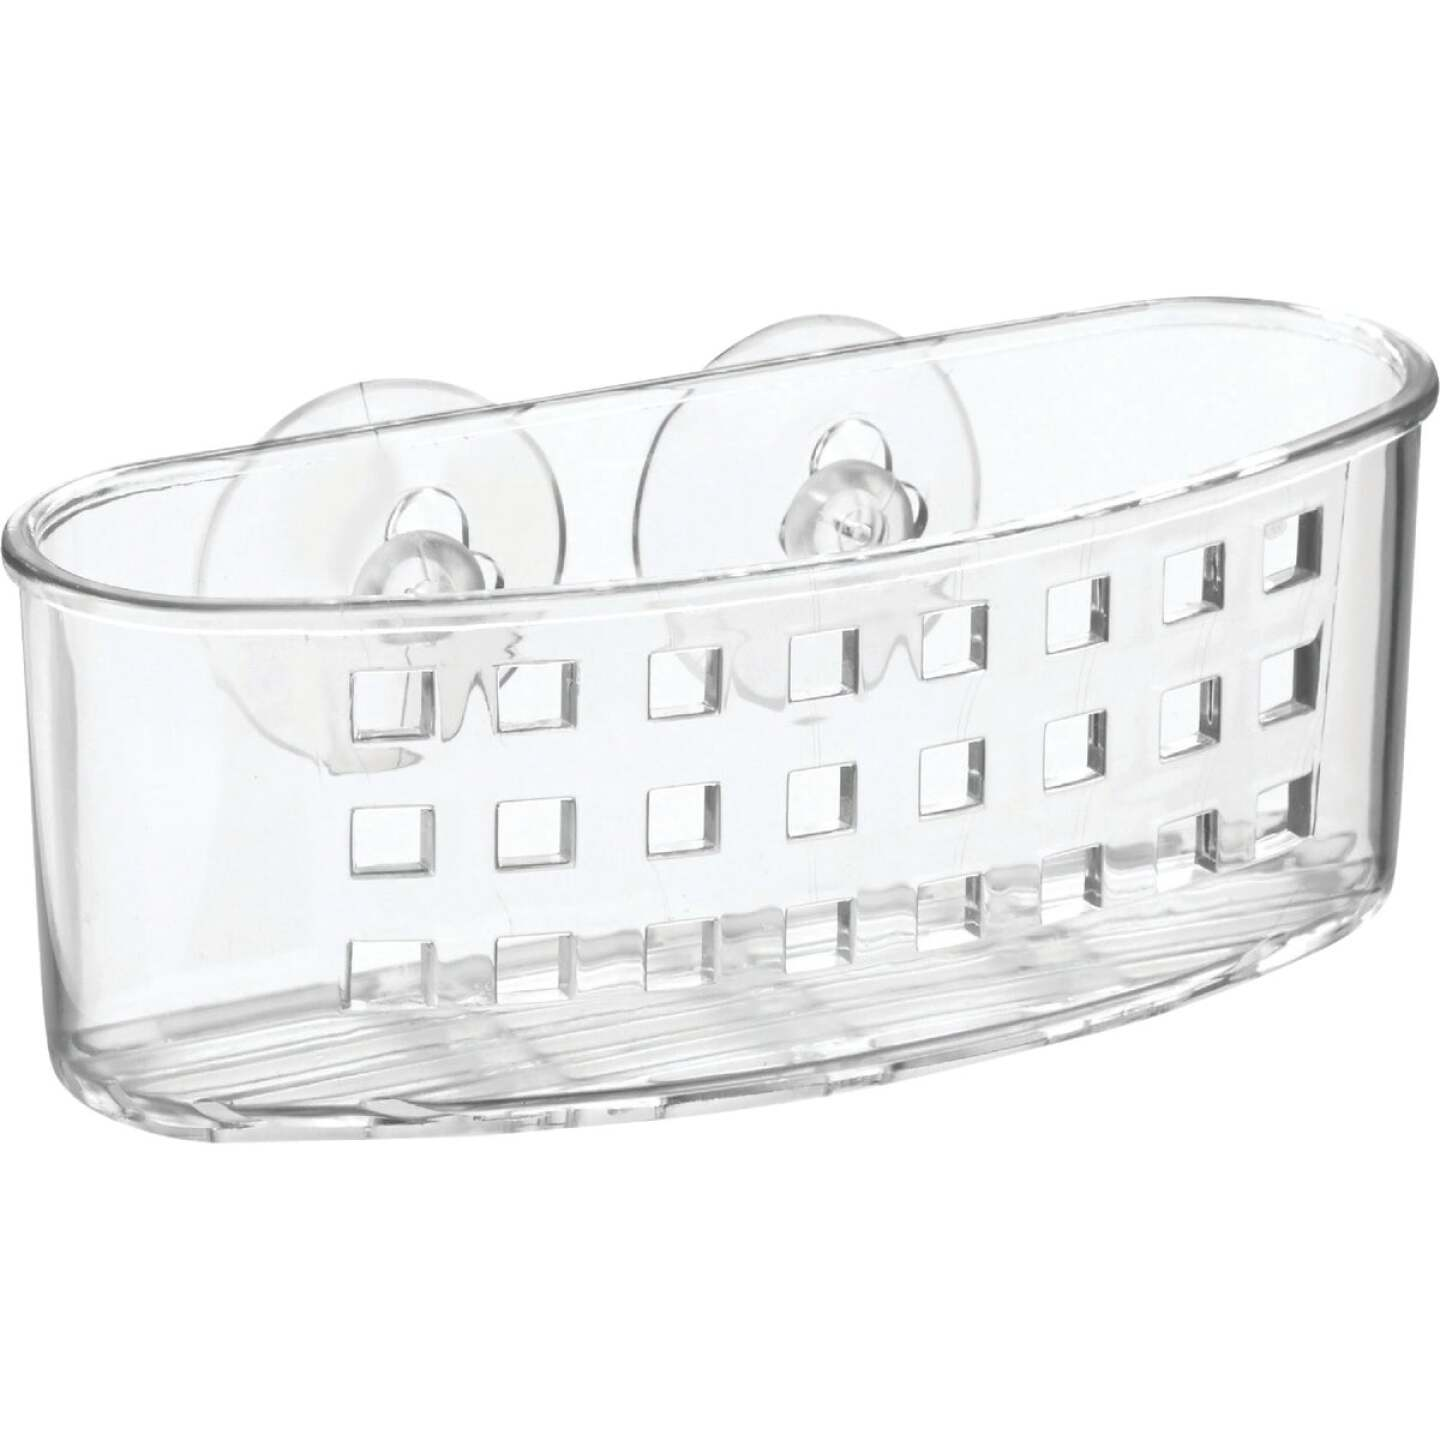 InterDesign Sinkworks Clear Suction Scrubber & Sponge Holder Image 1